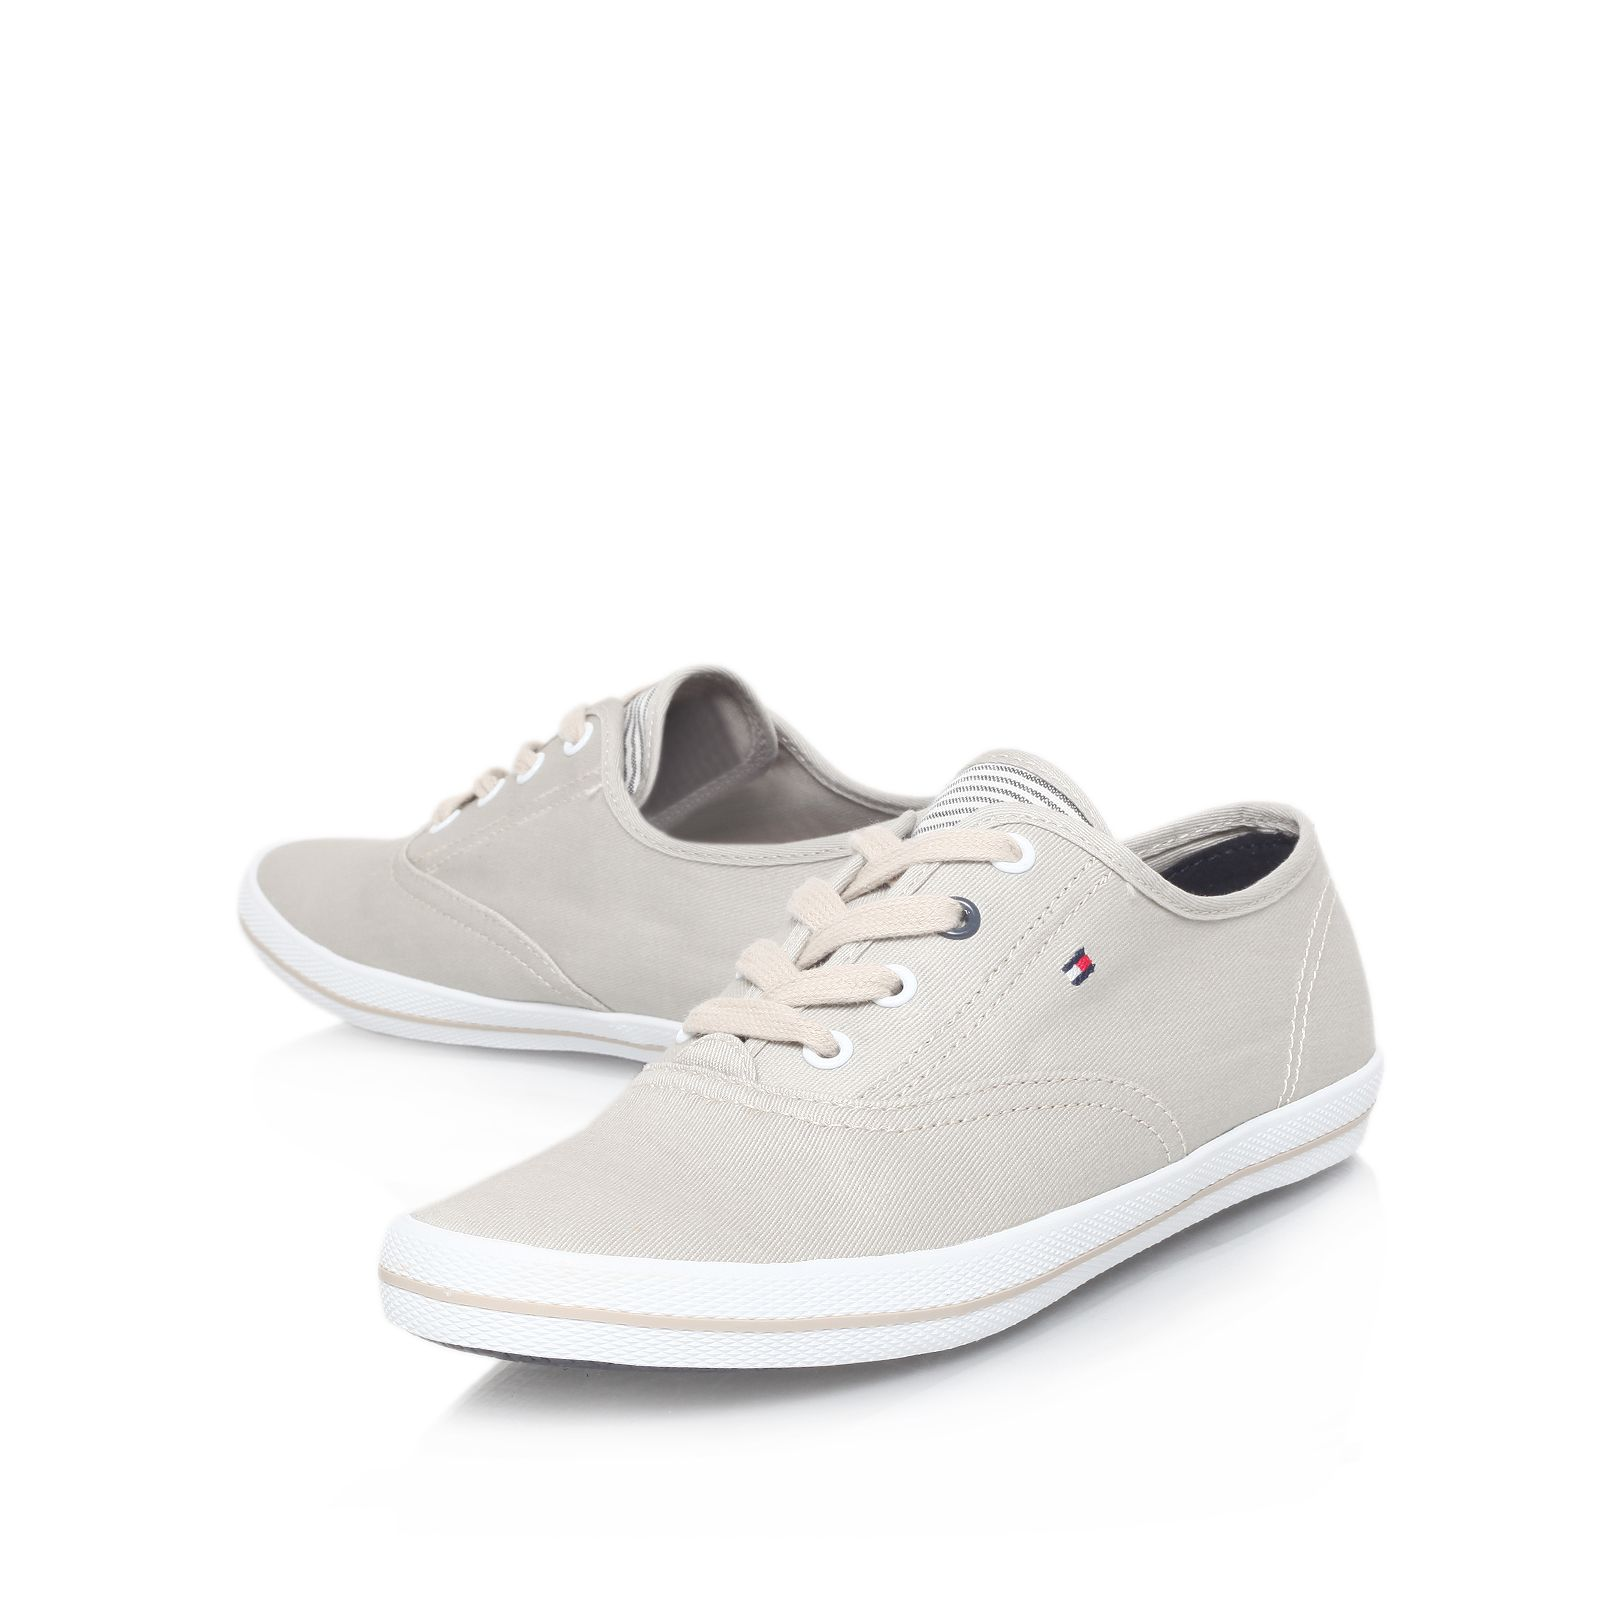 Flat low top trainers